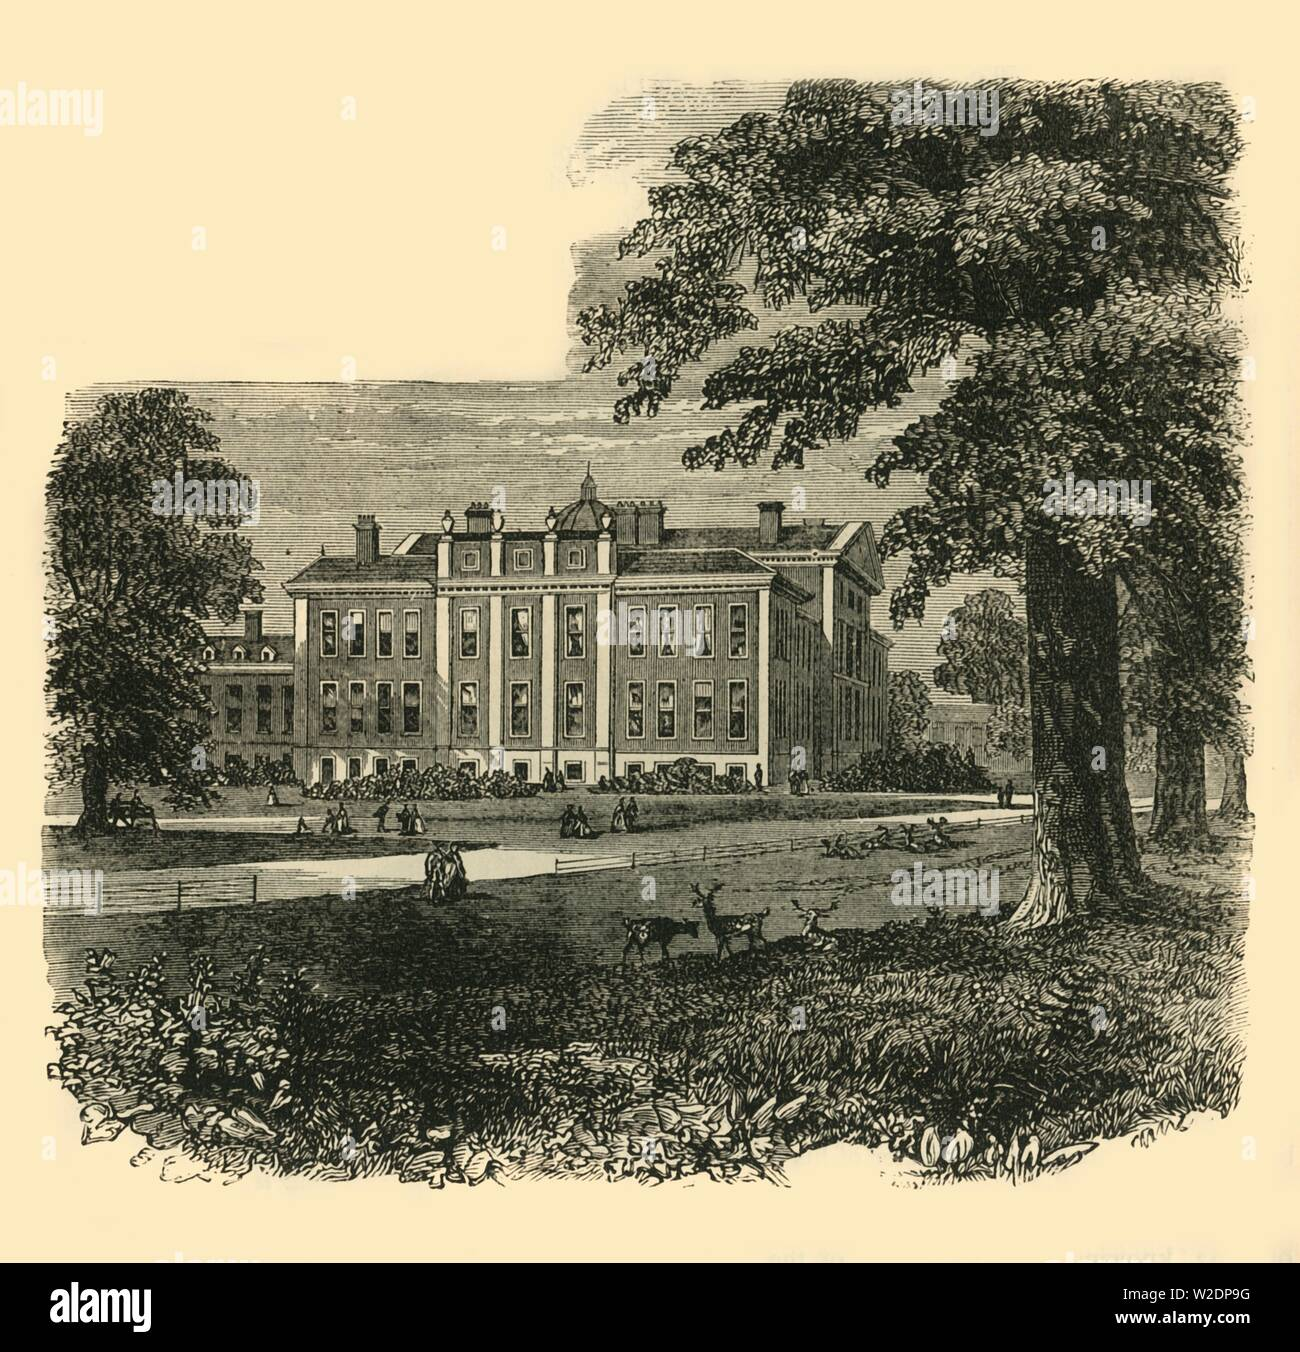 """'Kensington Palace, from the Gardens', c1876.  Kensington Palace, residence of the British Royal Family since 17th century. Originally a Jacobean mansion bought by William and Mary who instructed Sir Christopher Wren to expand it in 1689. From """"Old and New London: A Narrative of Its History, Its People, and Its Places. The Western and Northern Studies"""", by Edward Walford. [Cassell, Petter, Galpin & Co., London, Paris & New York] - Stock Image"""